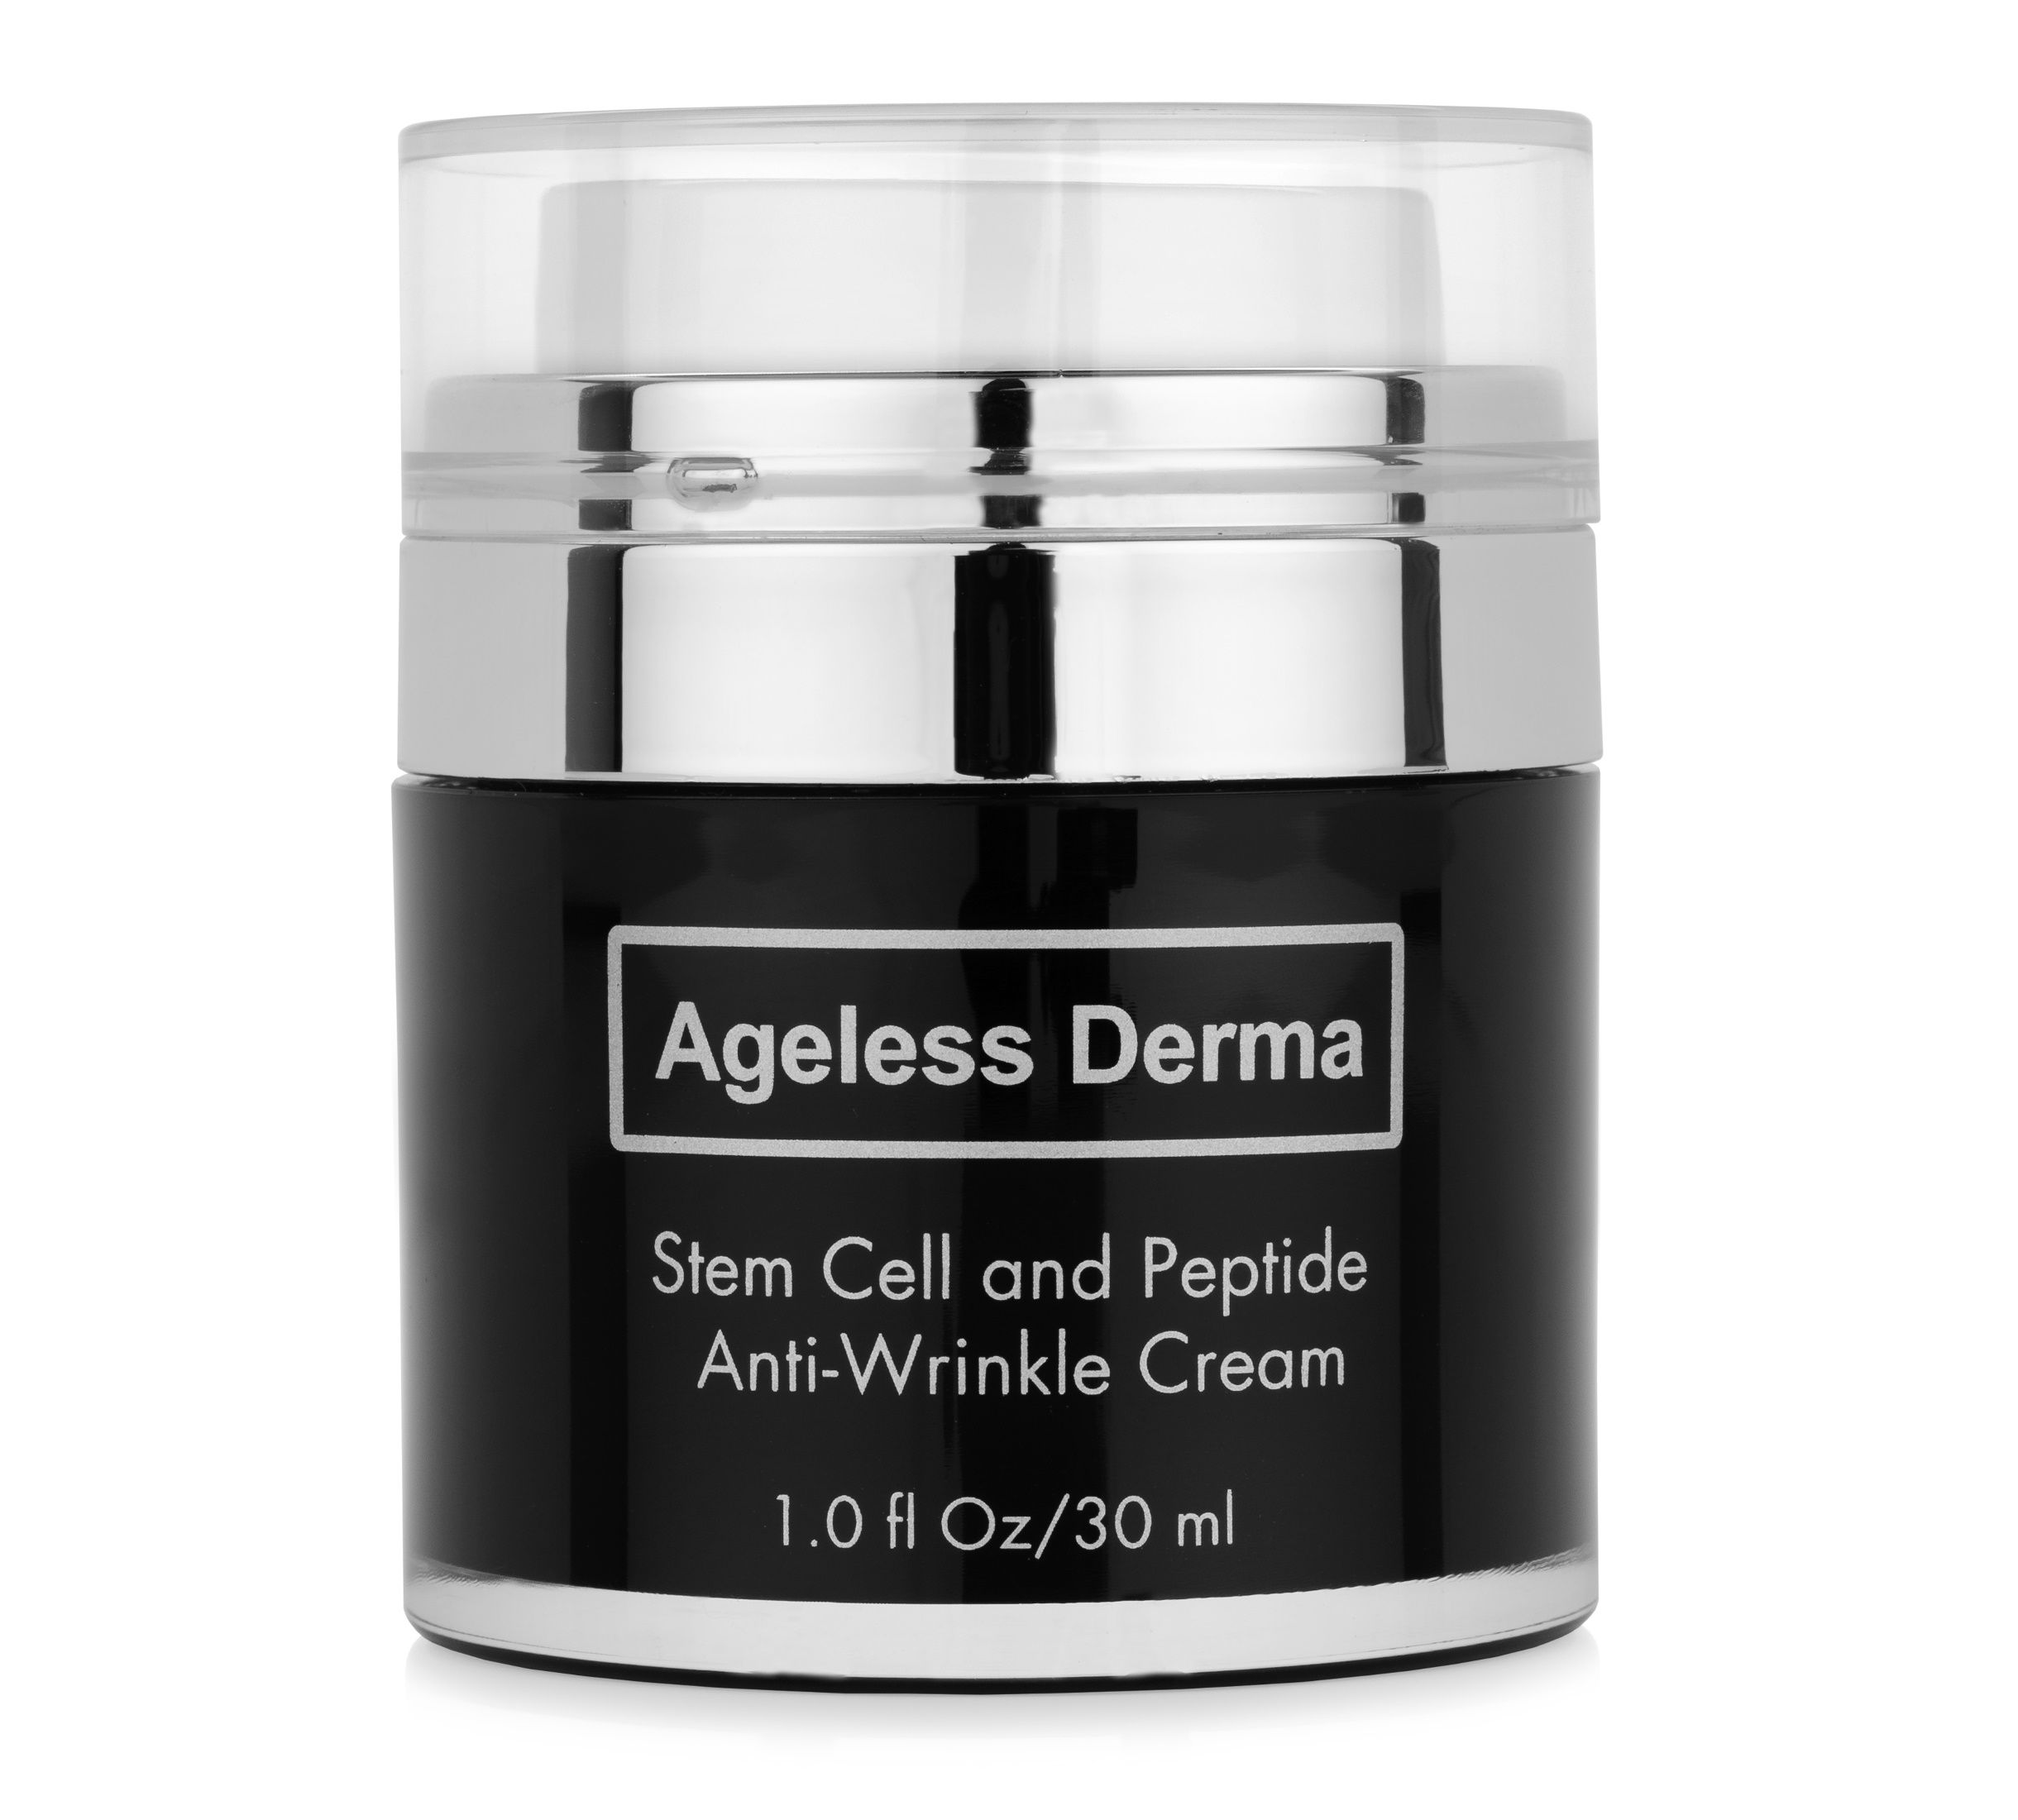 Anti Wrinkle Cream With Apple Stem Cell Extract Terri S Little Haven Best Skin Lightening Cream Skin Lightening Cream Brightening Cream